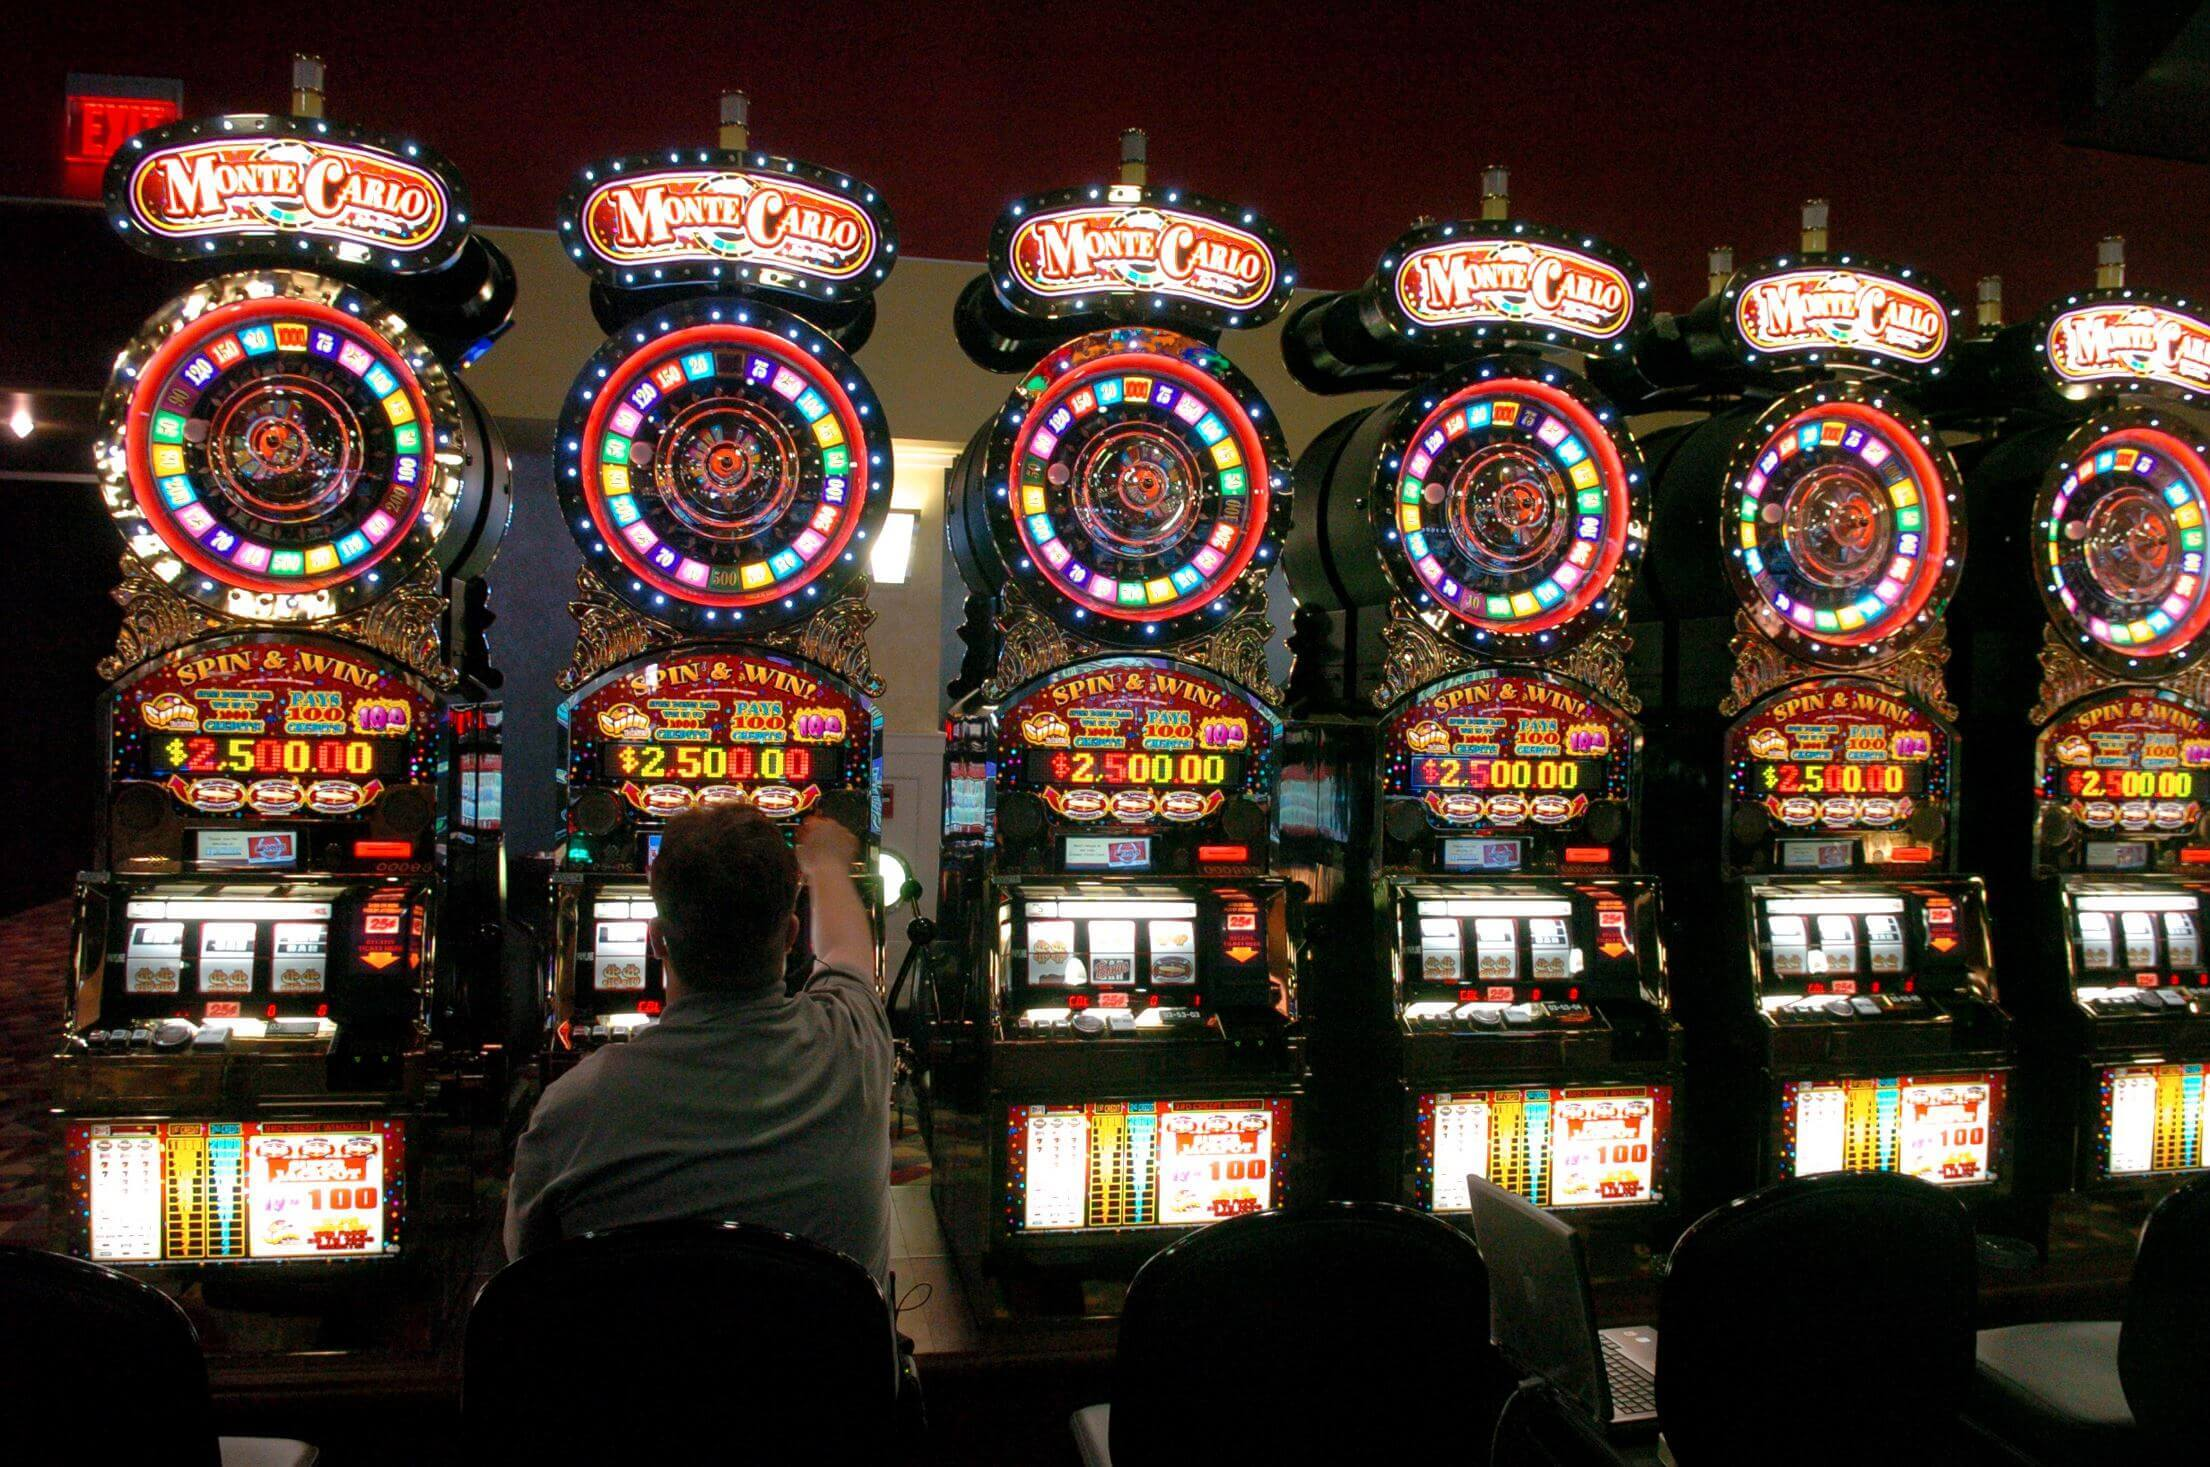 Why m.scr888.com Slot Game Let You Win First?